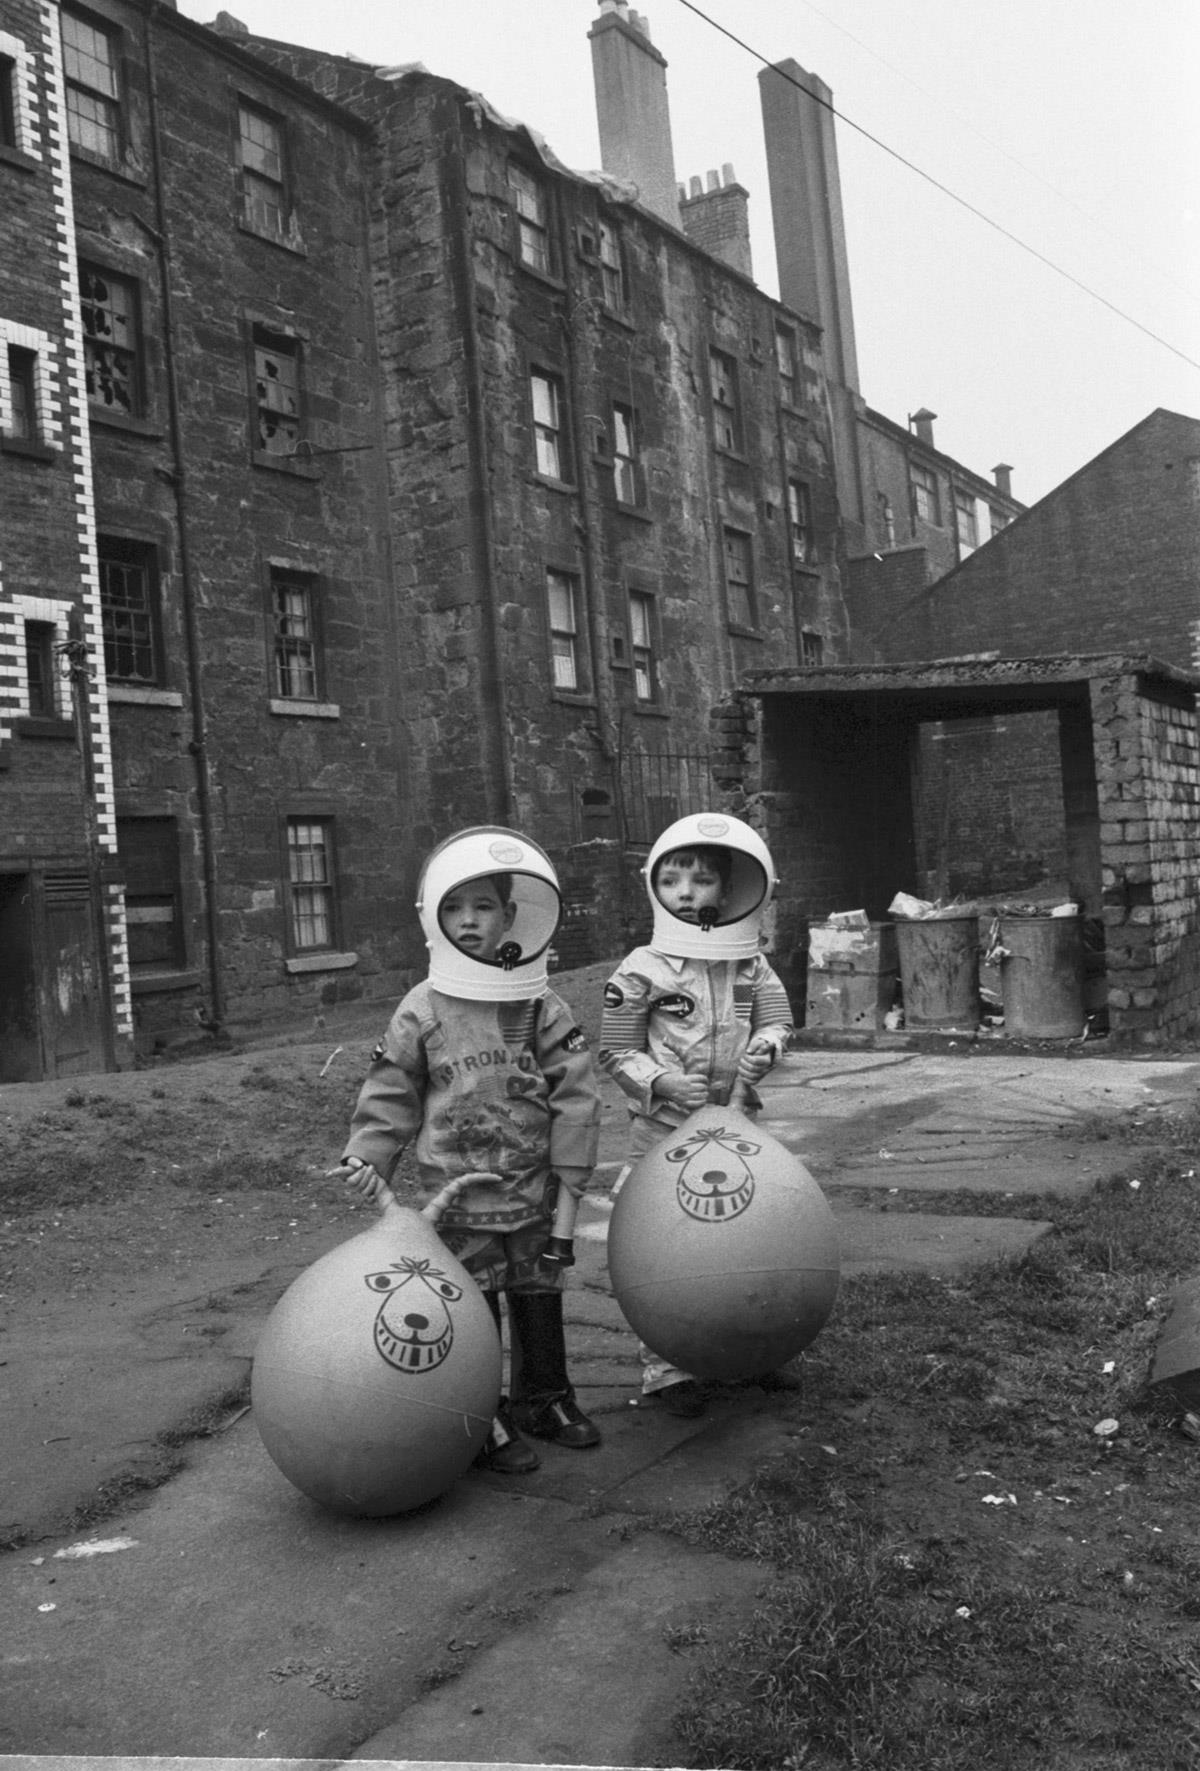 Boys with astronaut costumes and spacehoppers, Glasgow, Christmas 1970